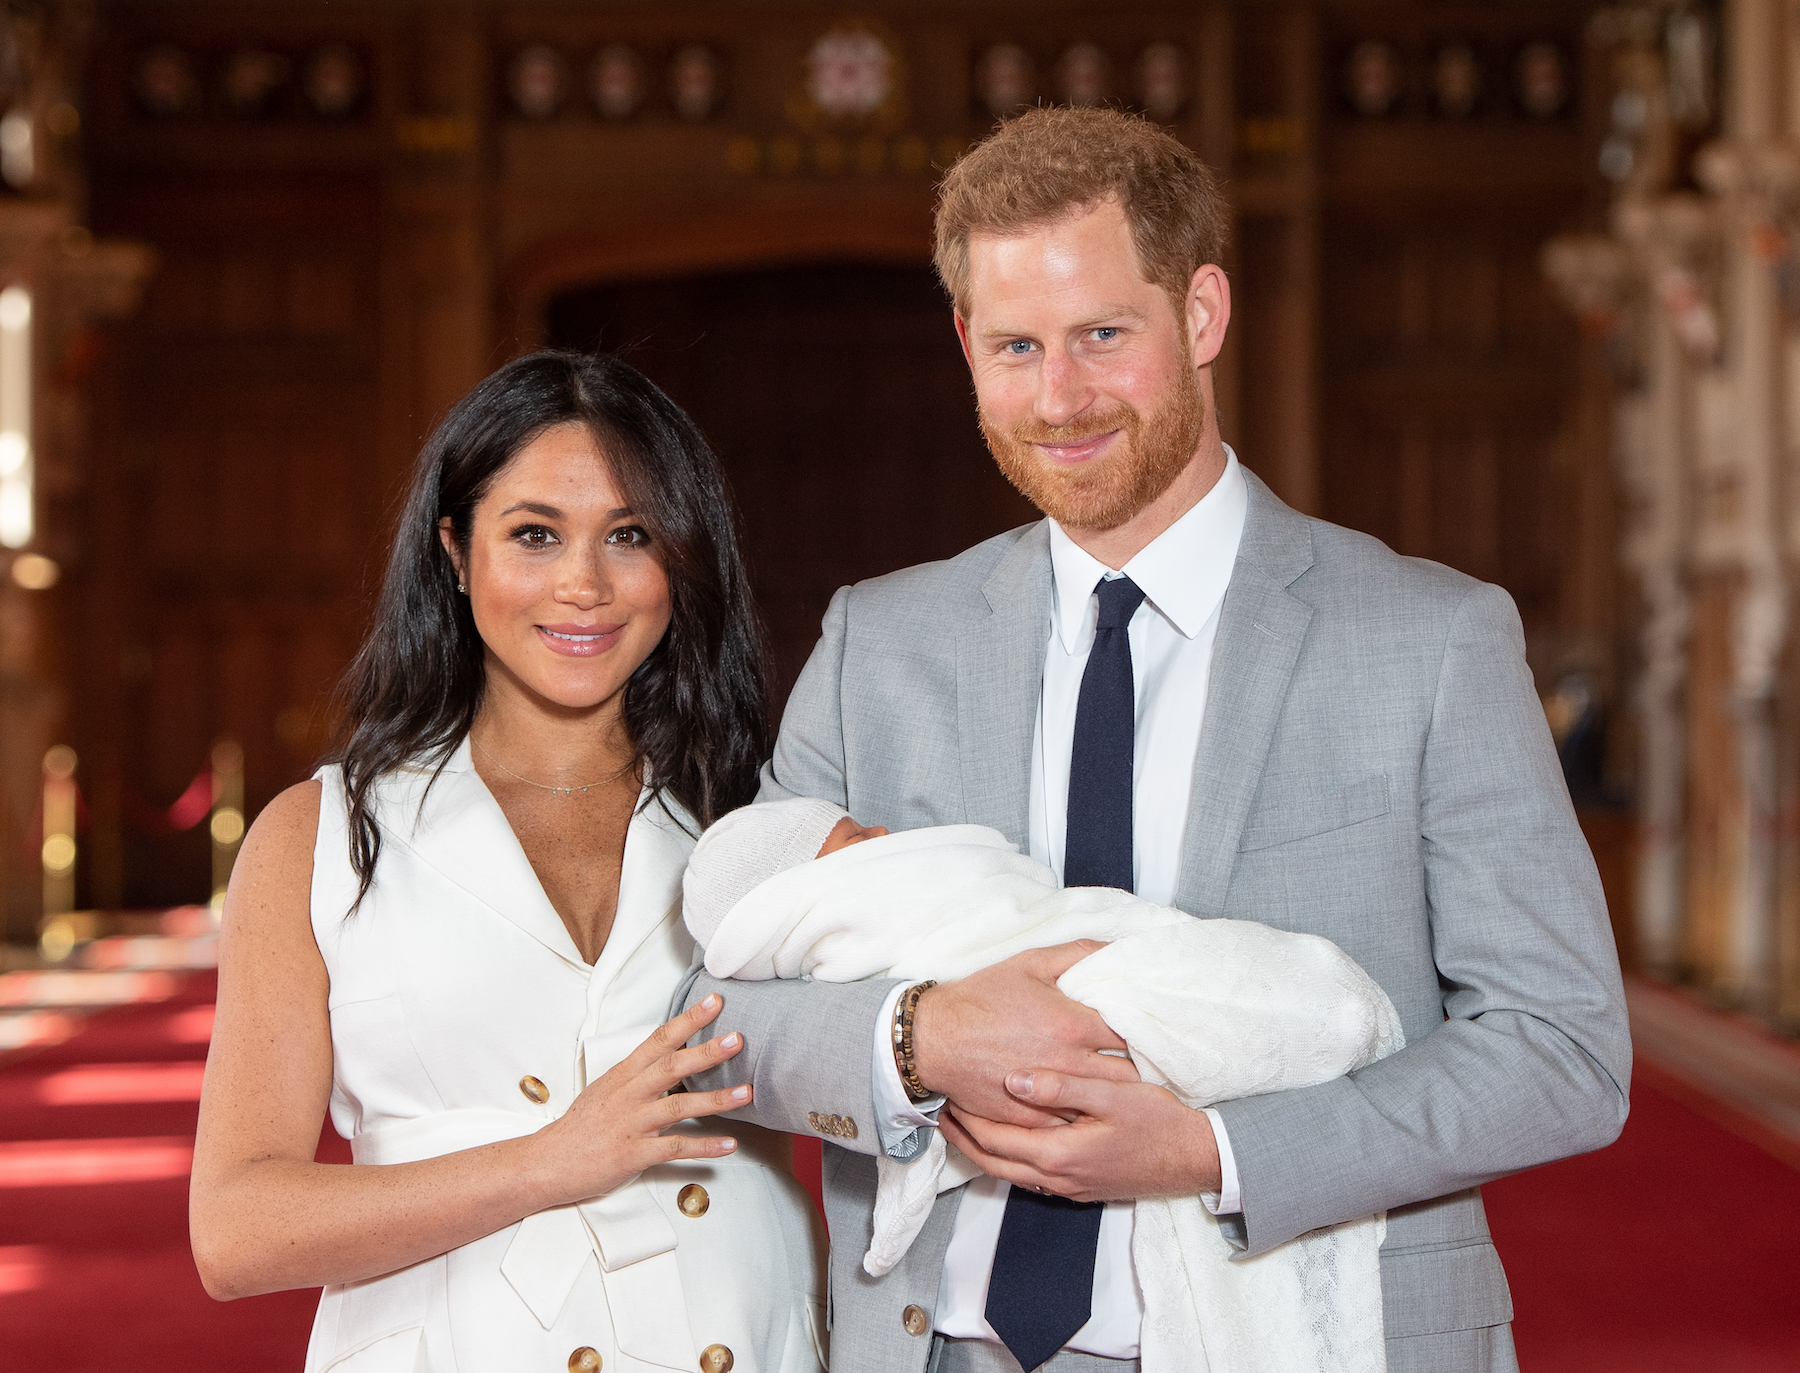 Prince Harry, Duchess Meghan, Meghan Markle, Archie - Prince Harry, Duke of Sussex and Meghan, Duchess of Sussex, pose with their newborn son Archie Harrison Mountbatten-Windsor during a photocall in St George's Hall at Windsor Castle on May 8, 2019 in Windsor, England. The Duchess of Sussex gave birth at 05:26 on Monday 06 May, 2019.